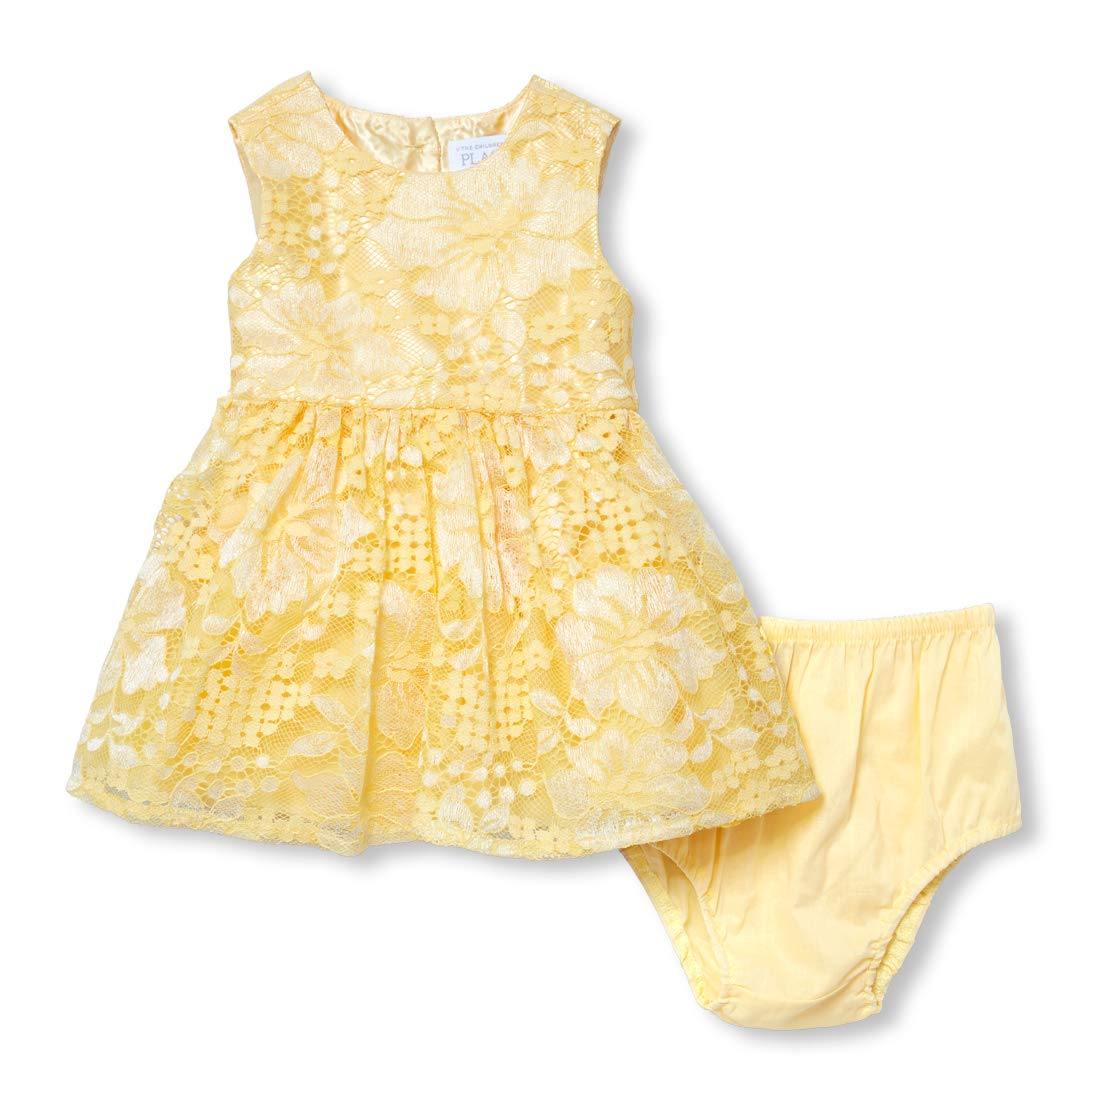 The Childrens Place Baby Girls Novelty Printed Dress